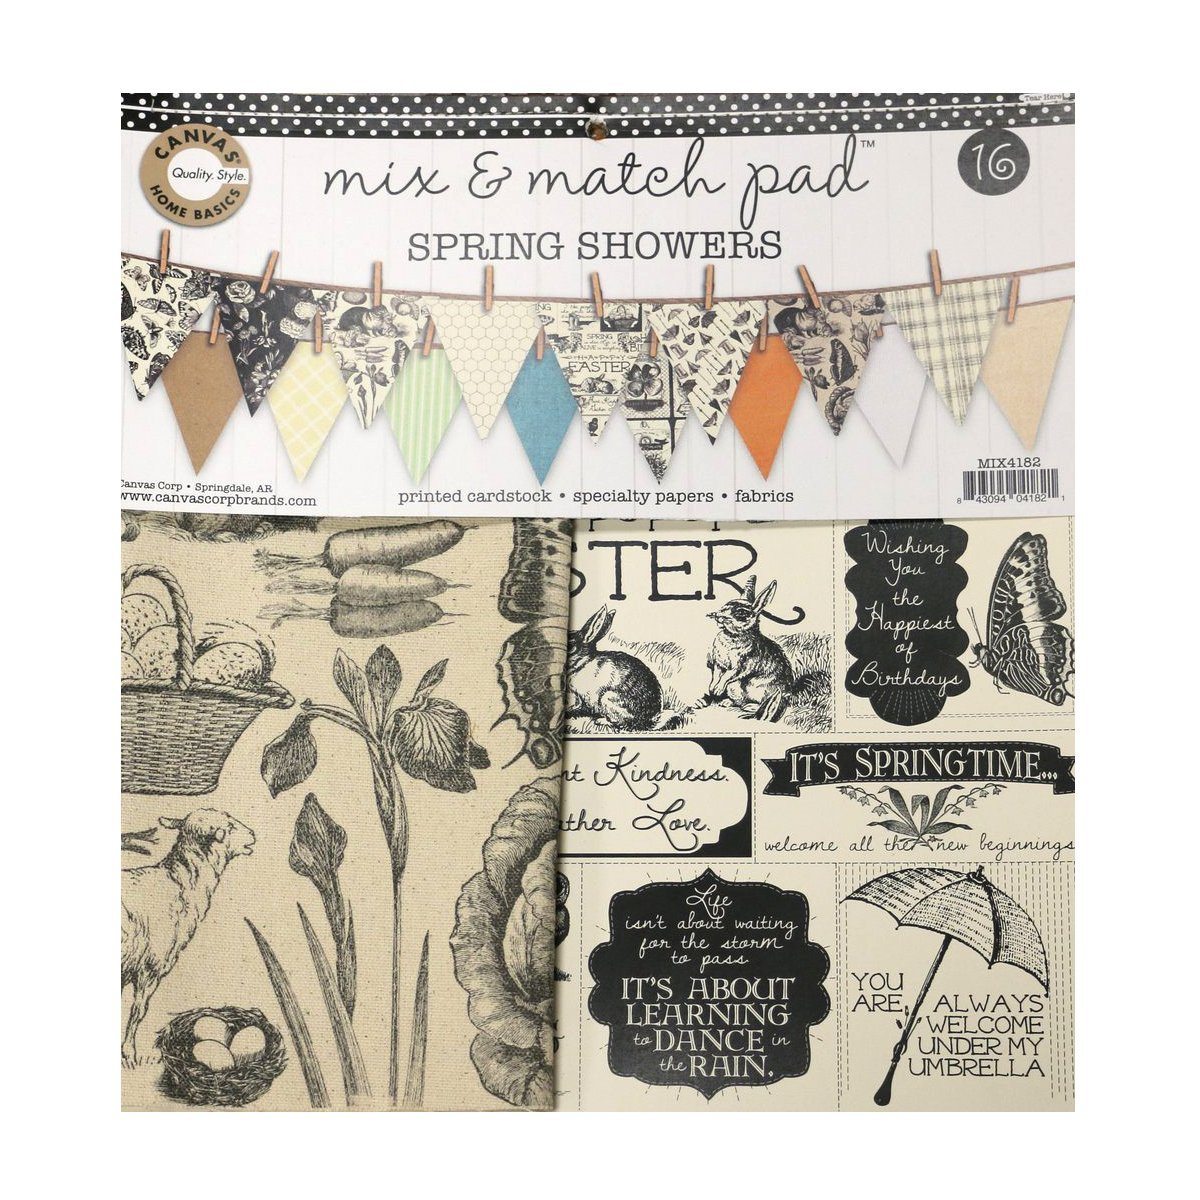 Spring Showers Mix & Match Pad